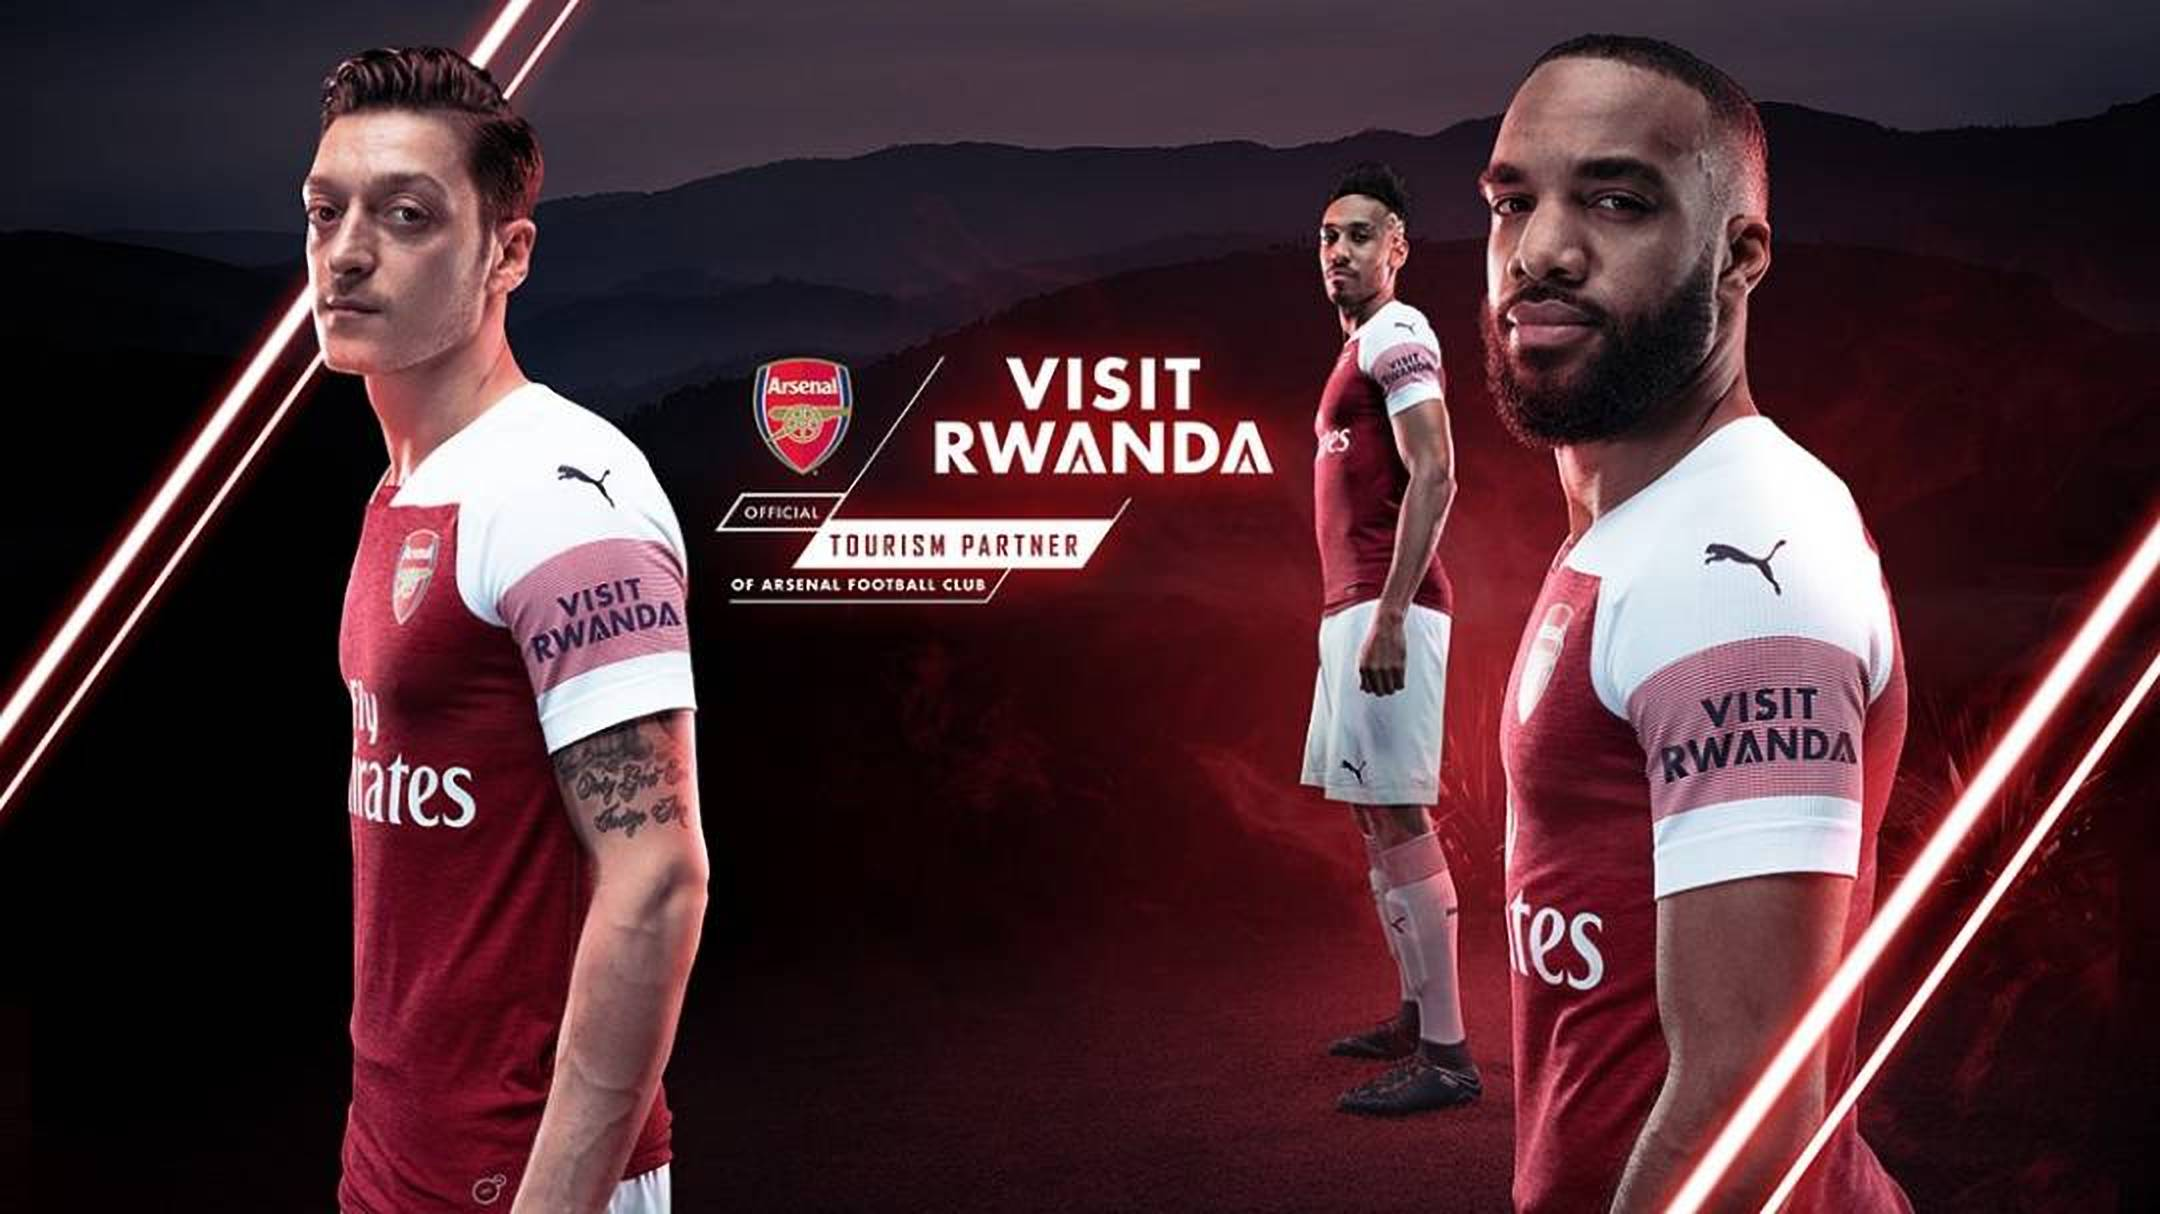 'Visit Rwanda' logo will feature on the left sleeve of team's kit as Arsenal our official Tourism Partner (NET PHOTO)